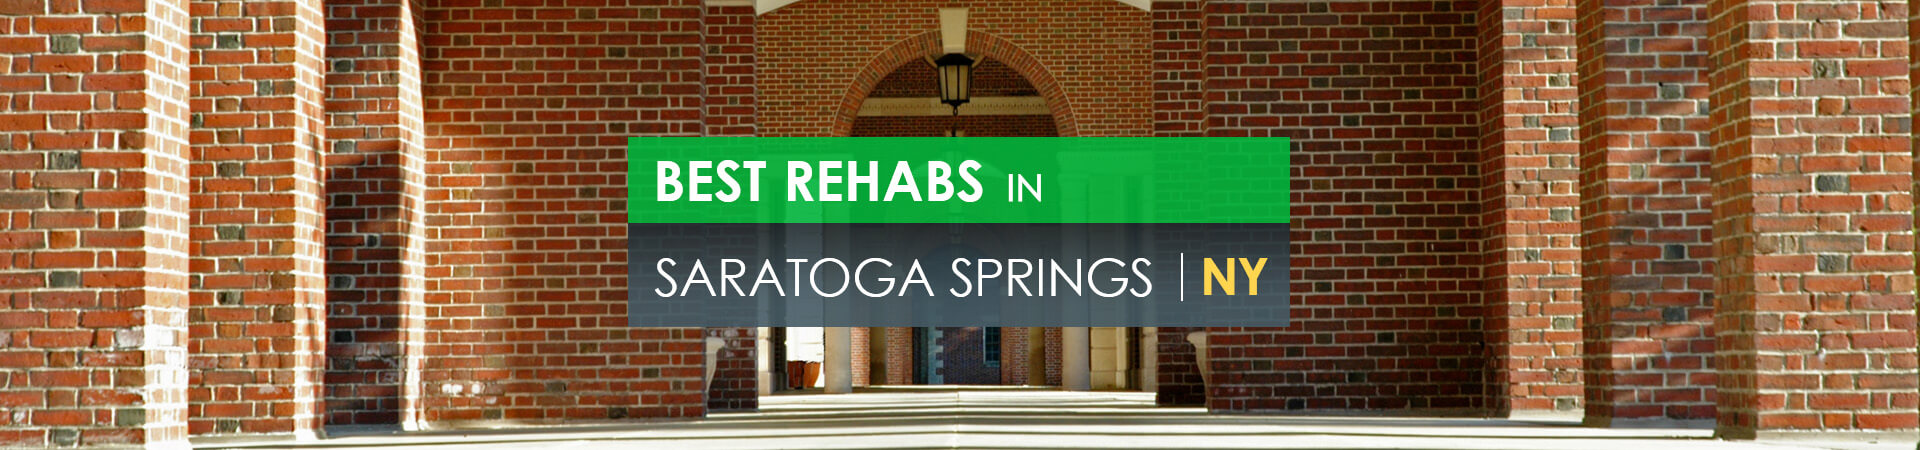 Best rehabs in Saratoga Springs, NY